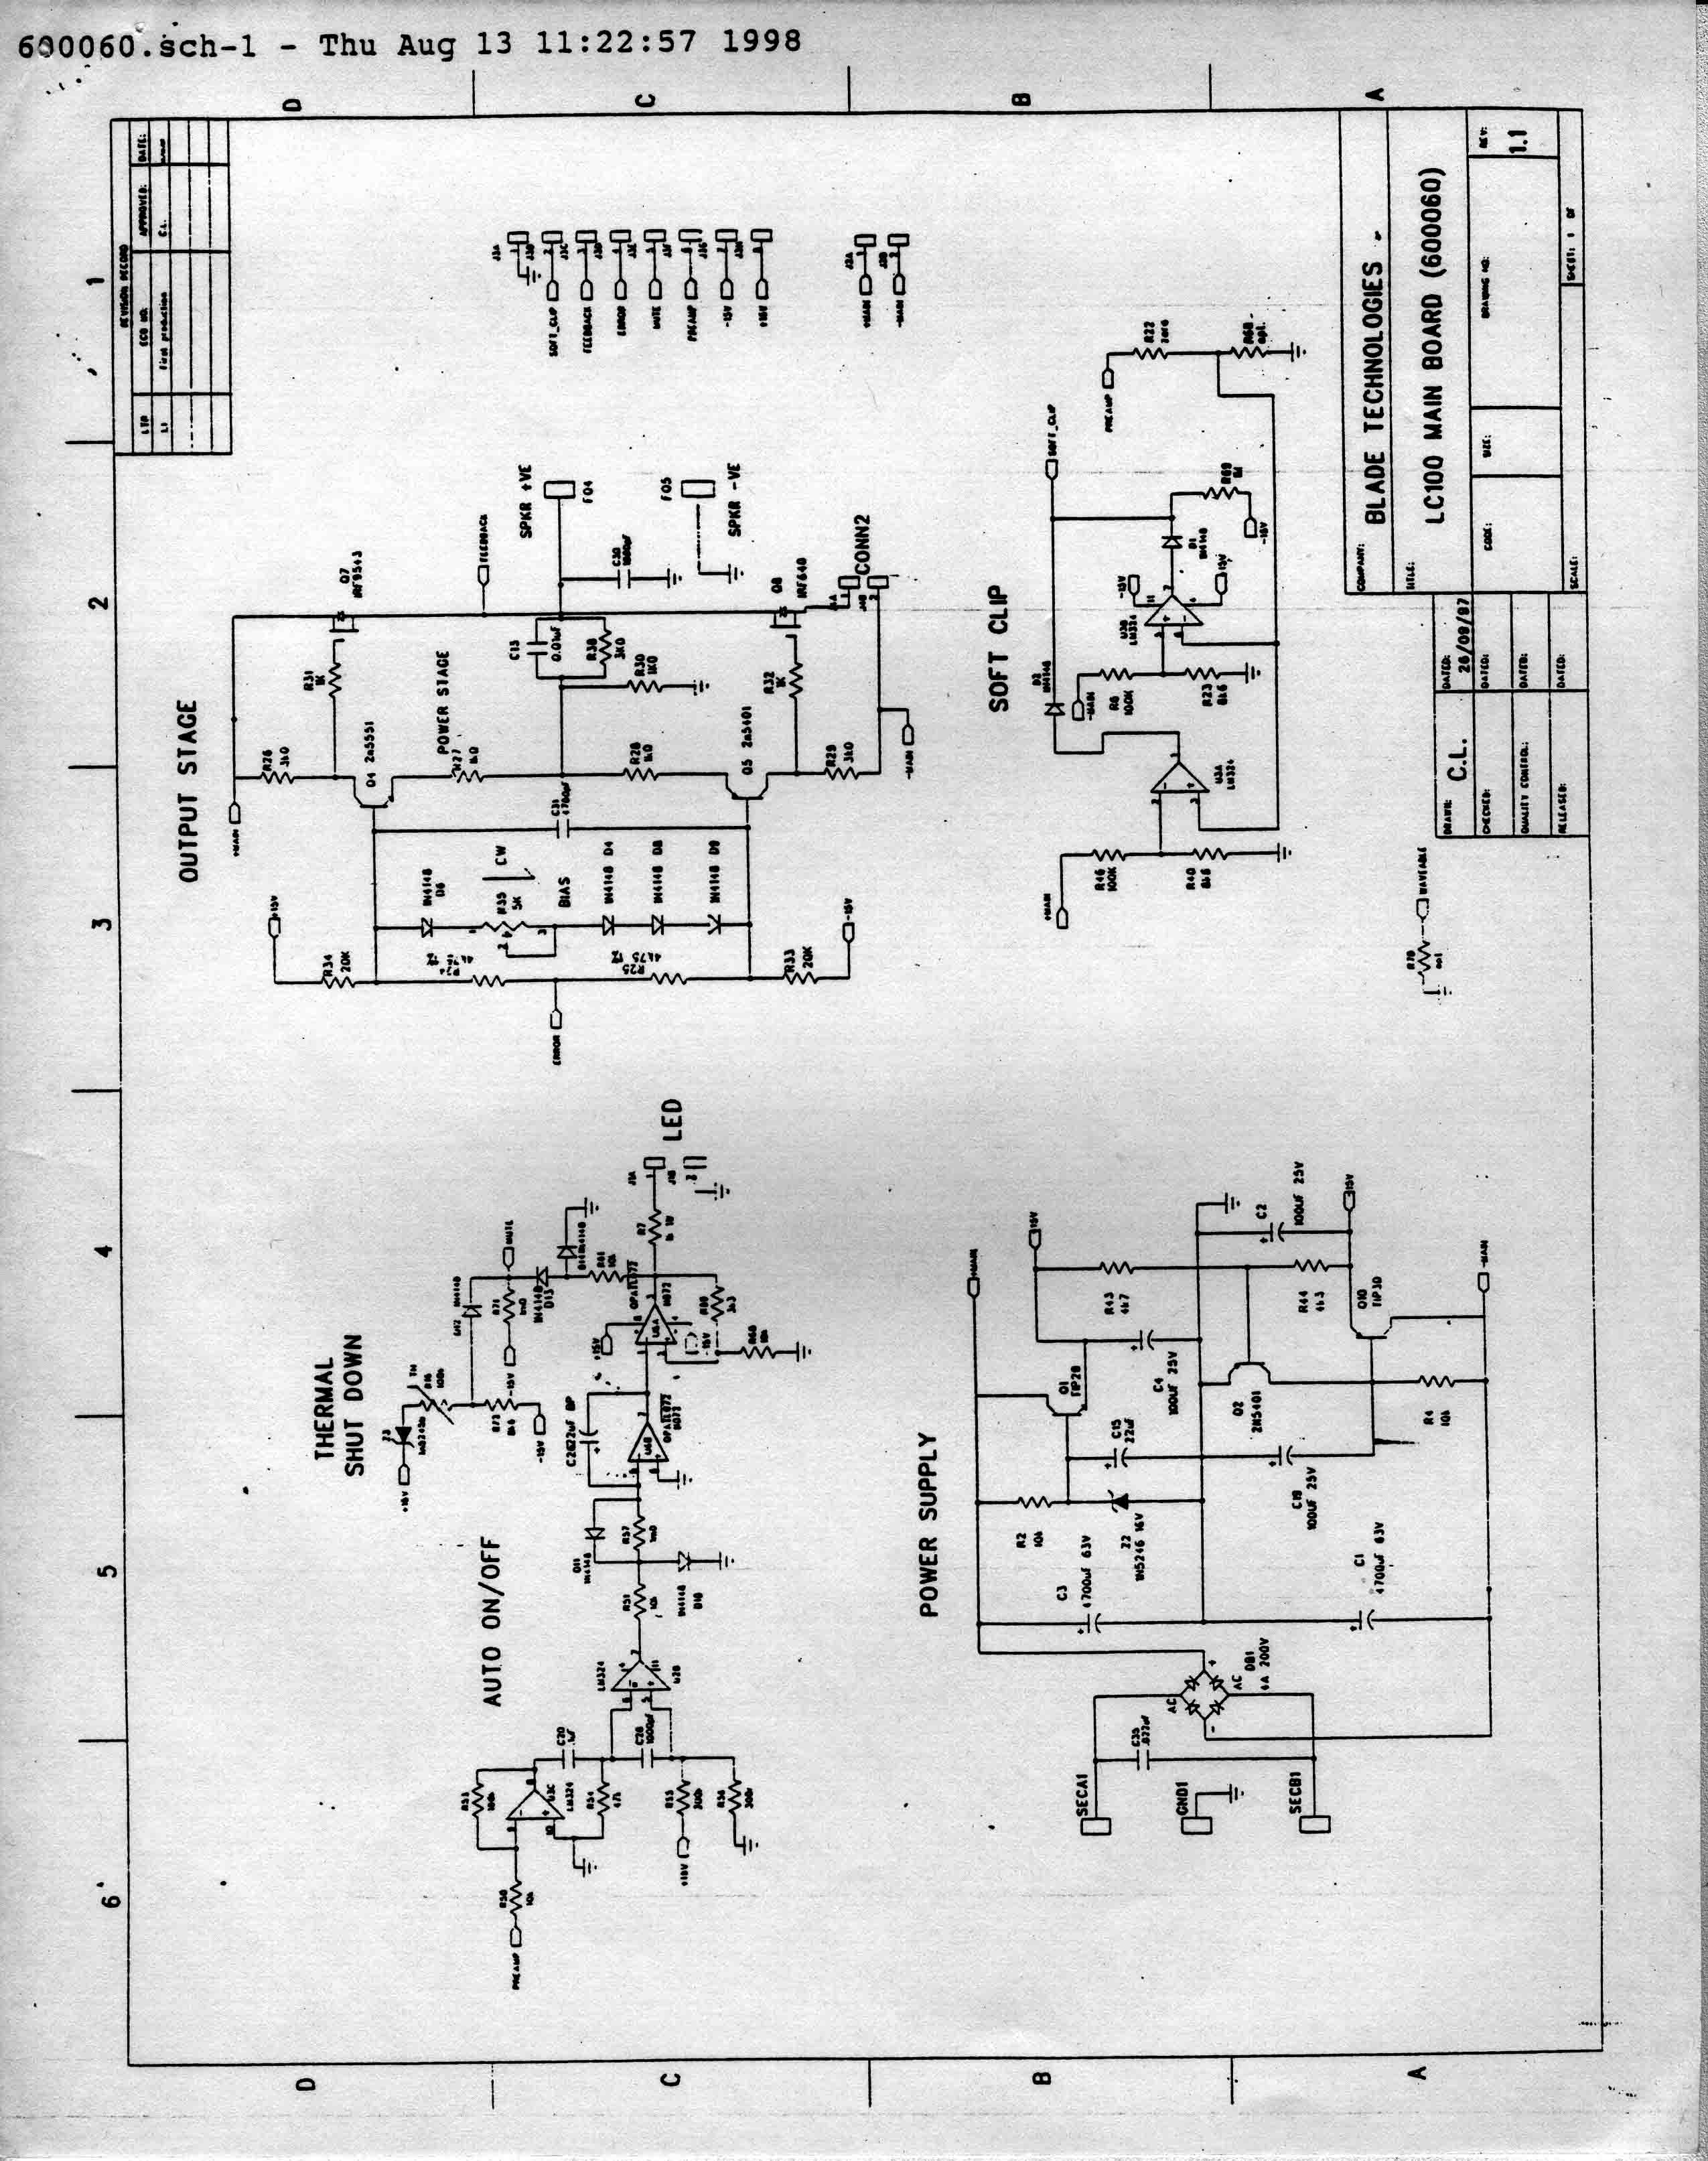 5 1 subwoofer circuit diagrams carver cinema 5.1 and 5.2 speaker systems - specifications ... 1 way circuit diagram